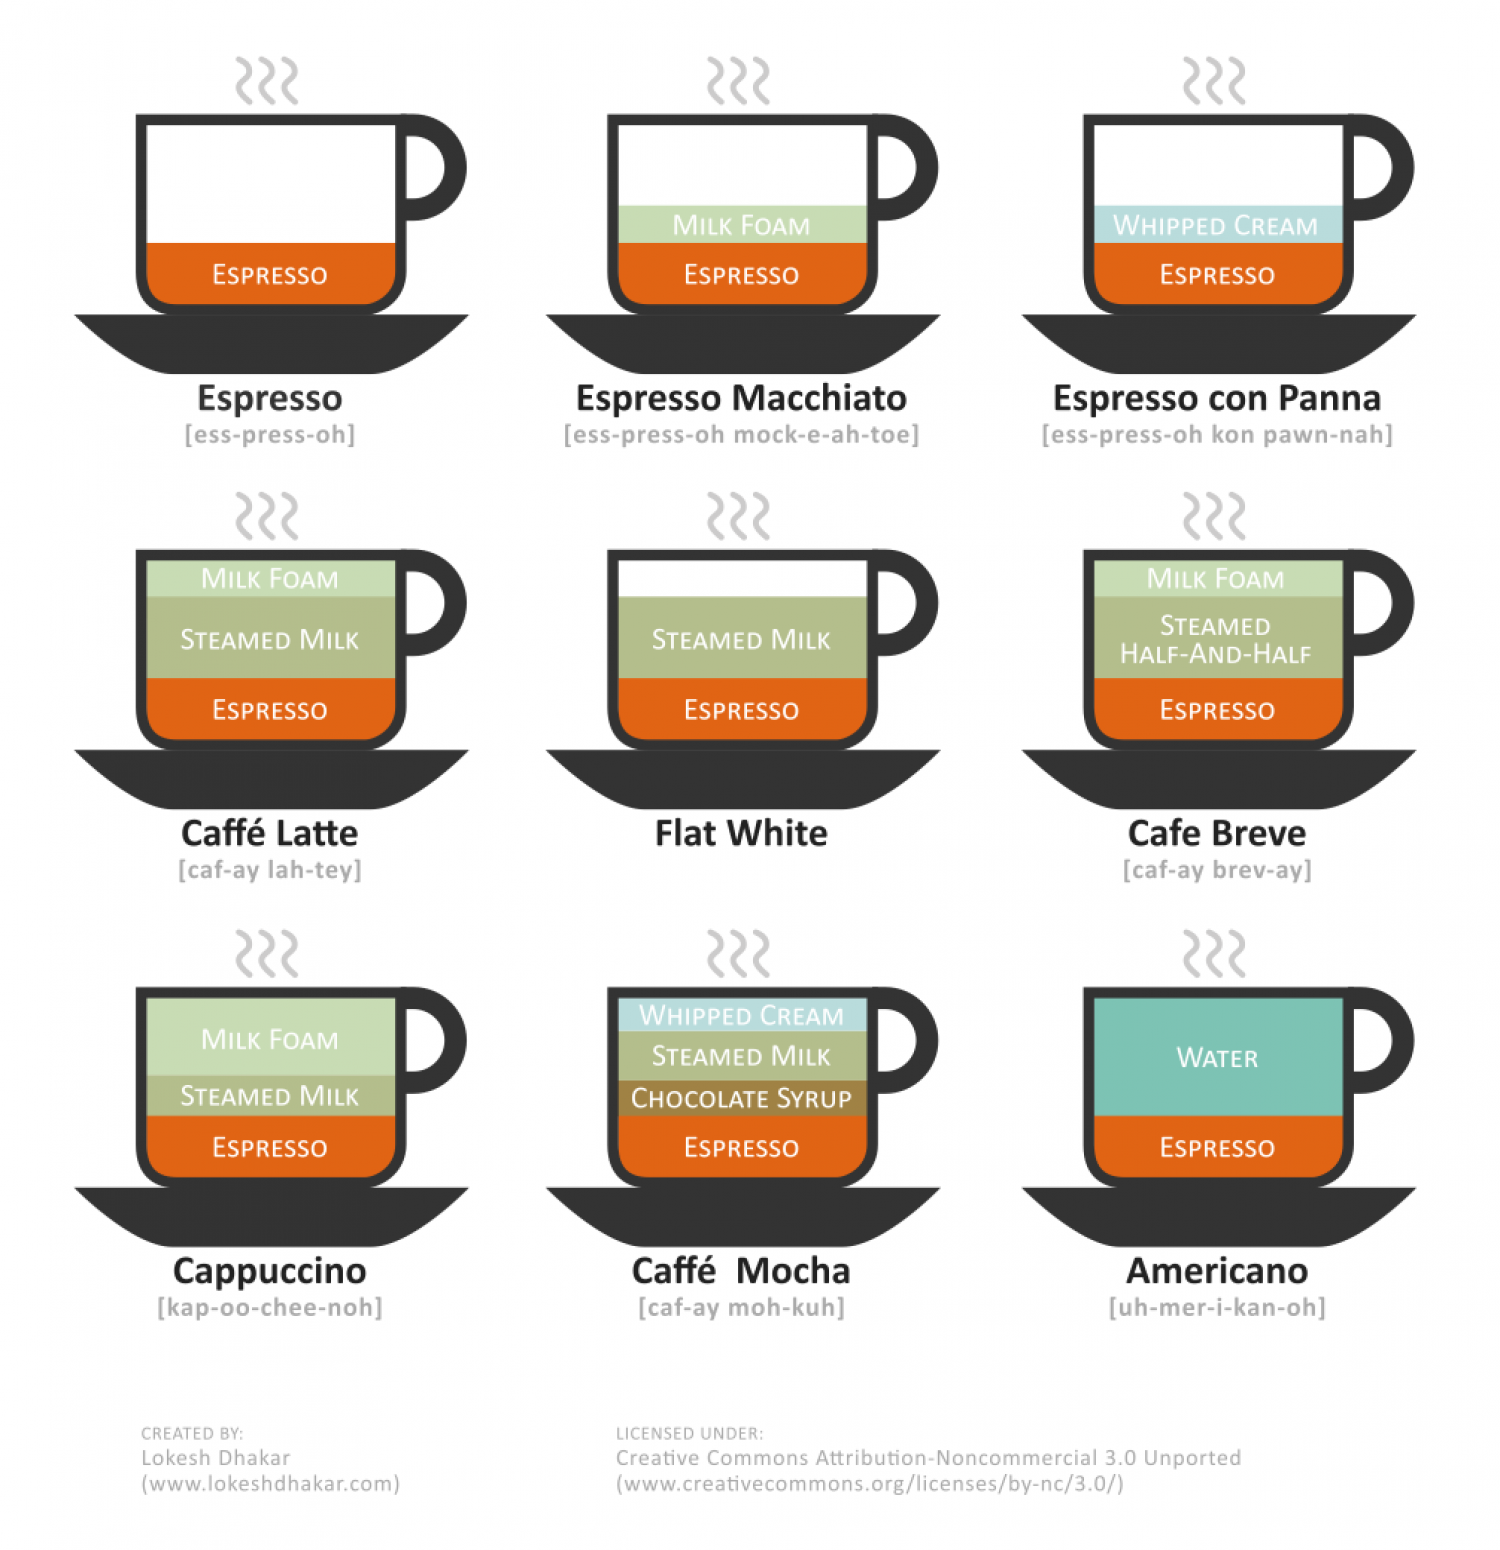 Coffee And Espresso Drinks Explained (PHOTOS)